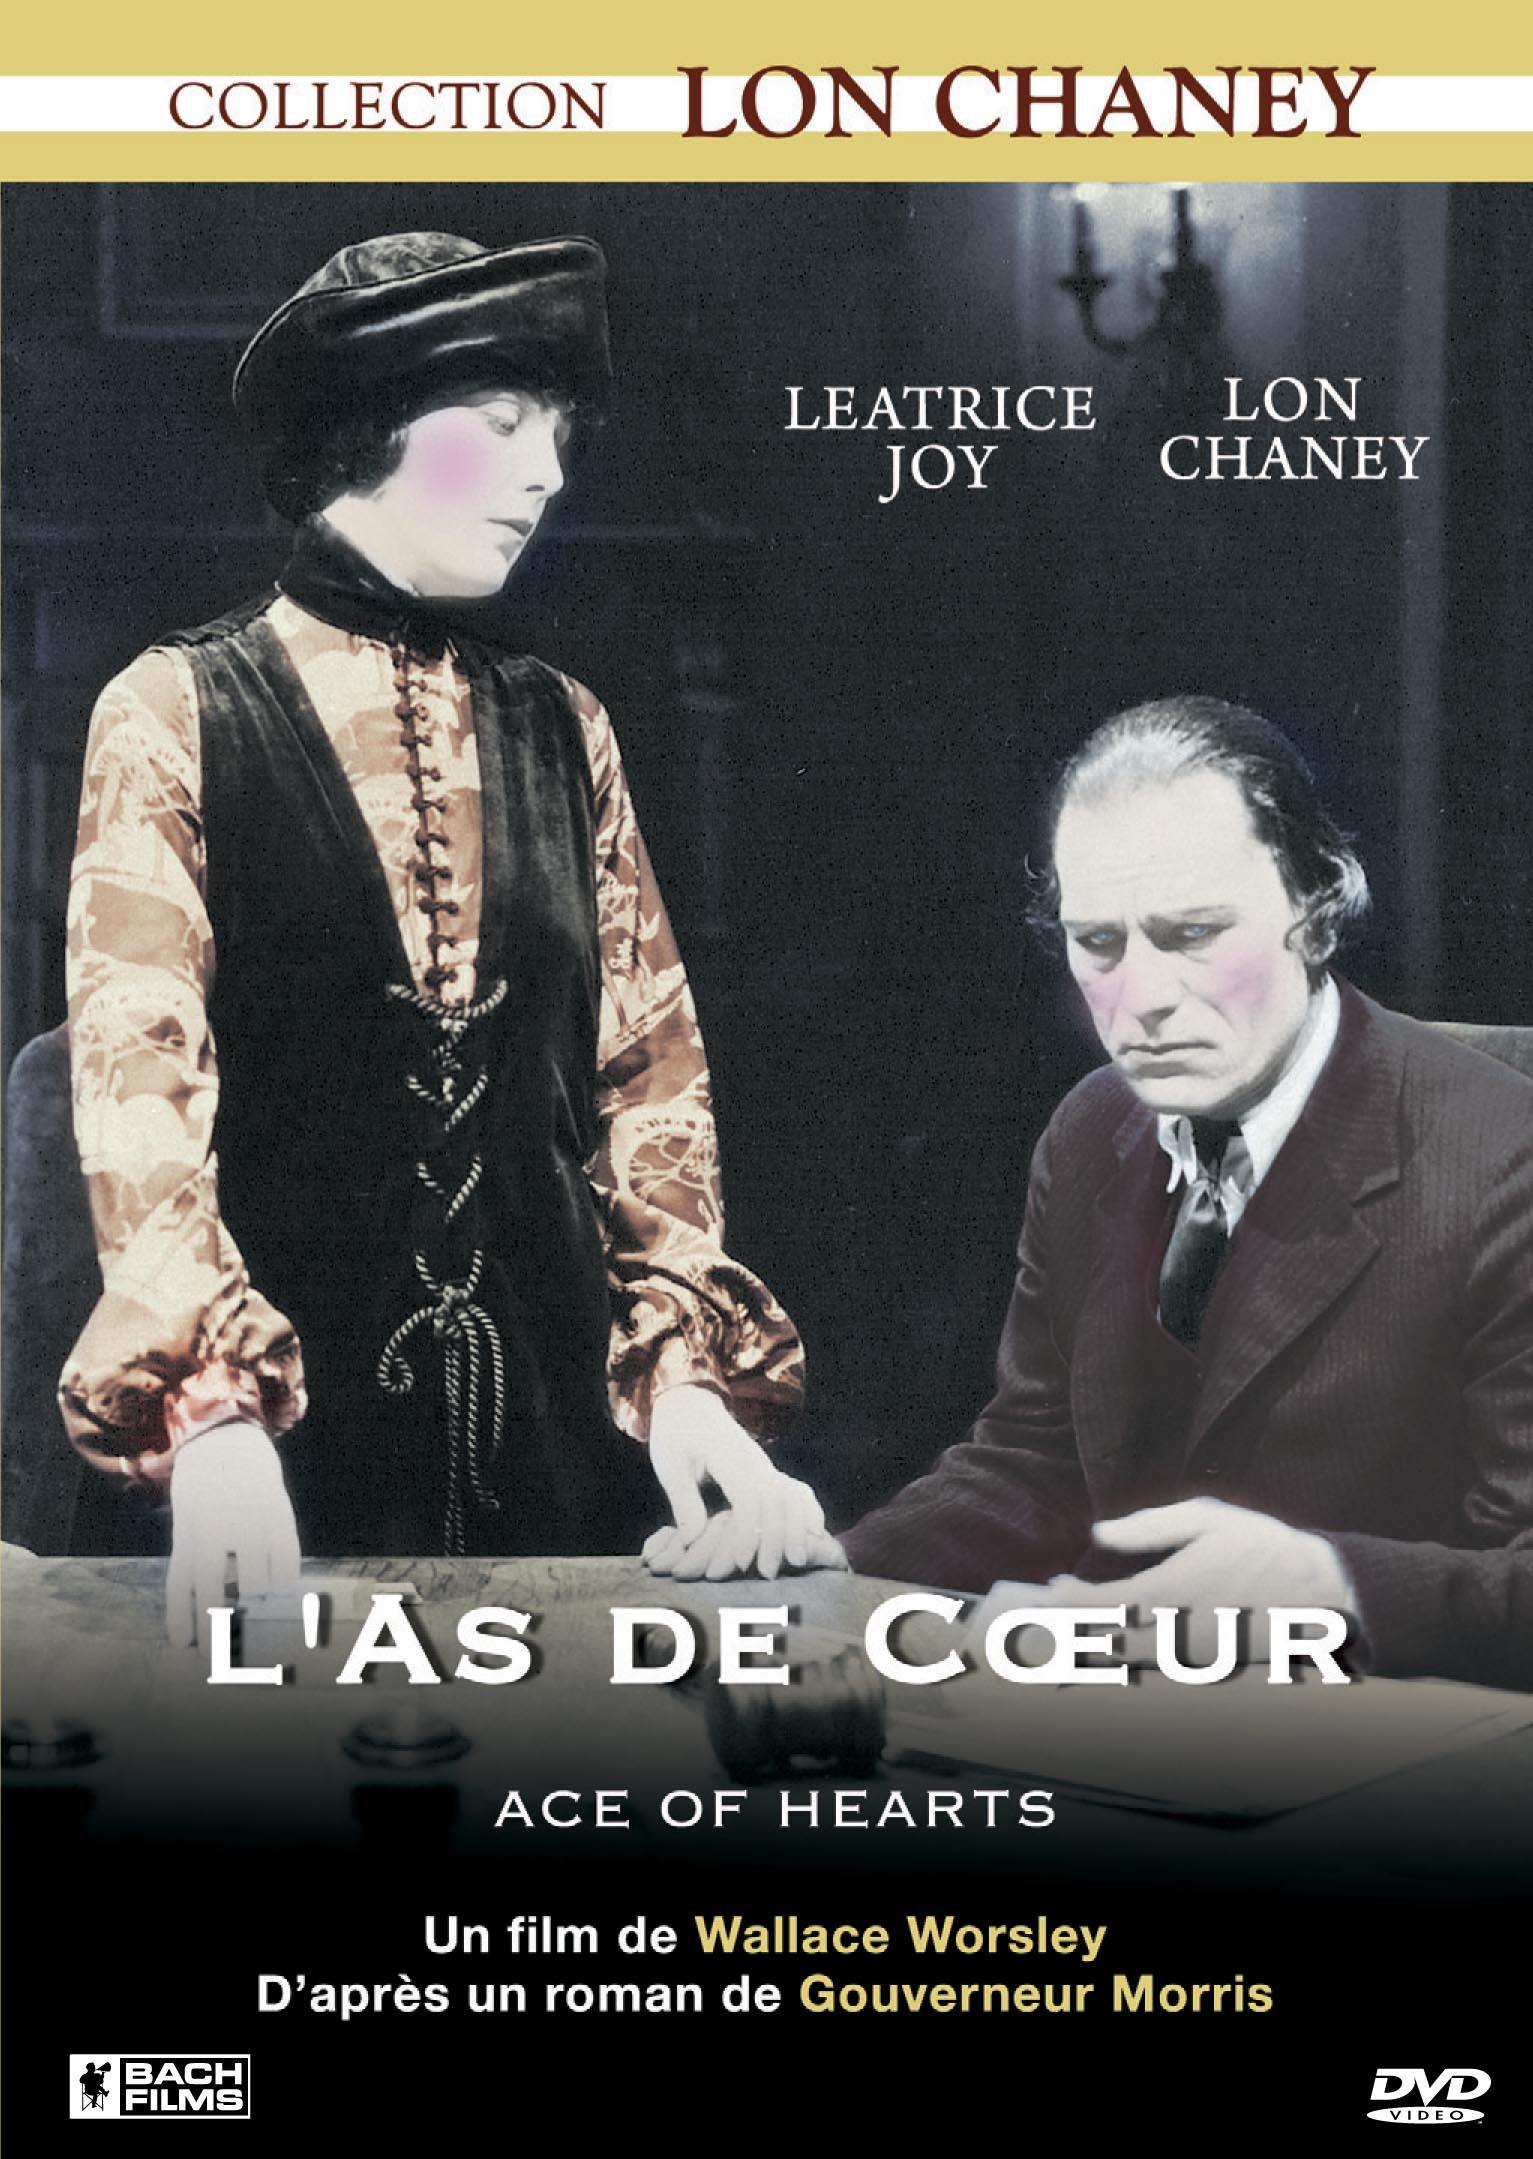 L'as de coeur - dvd  collection lon chaney